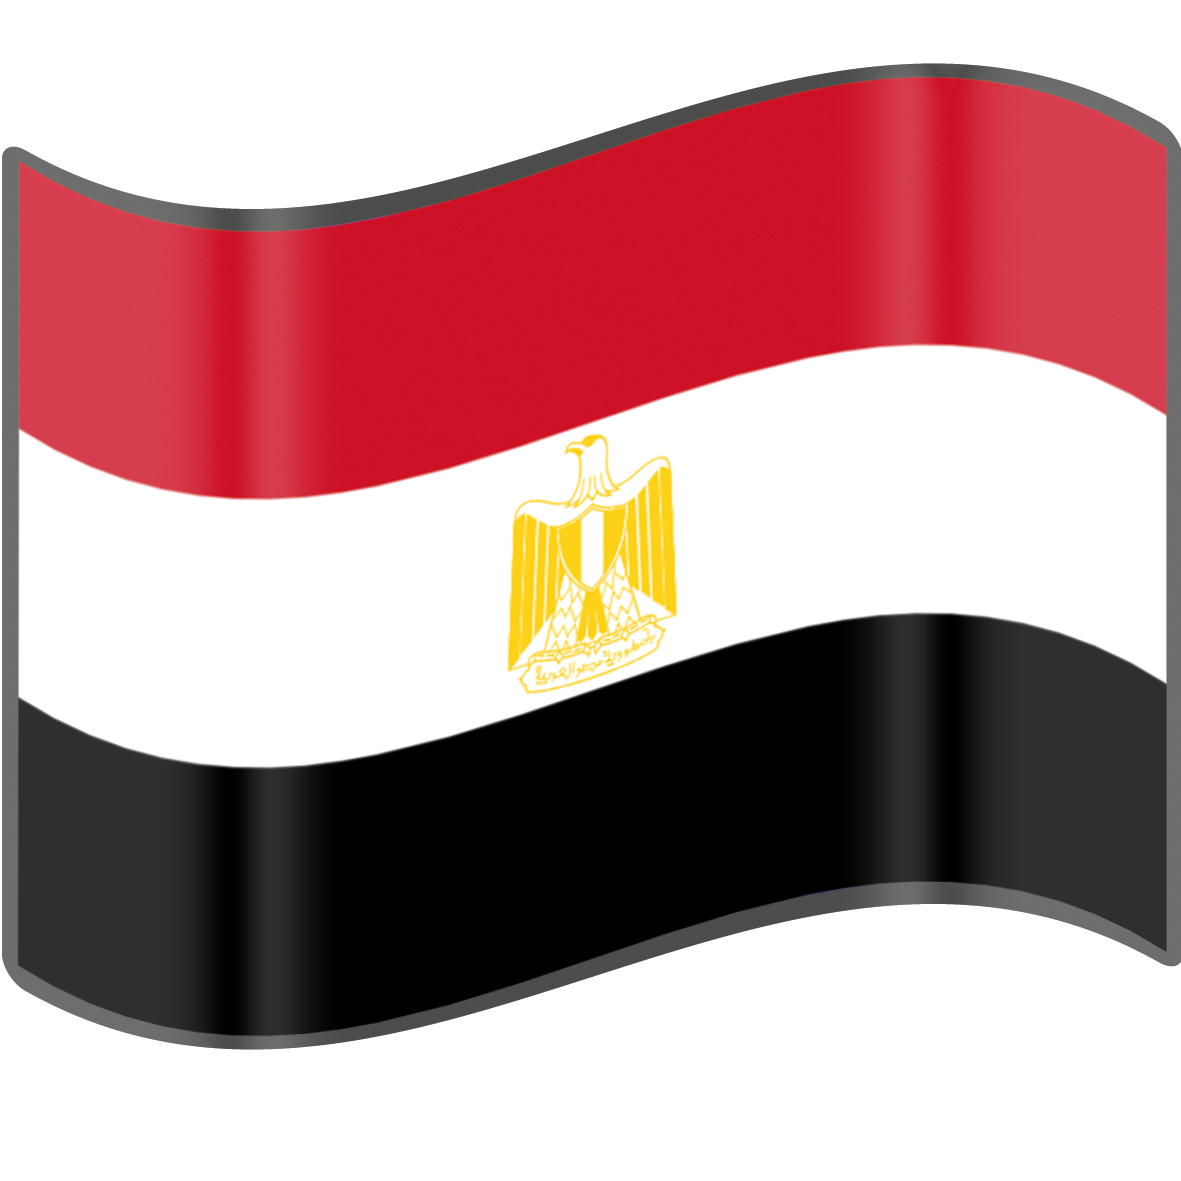 صور علم مصر متحركة http://masrawe-b.blogspot.com/2012/12/Egyptian-flag-images-2013.html